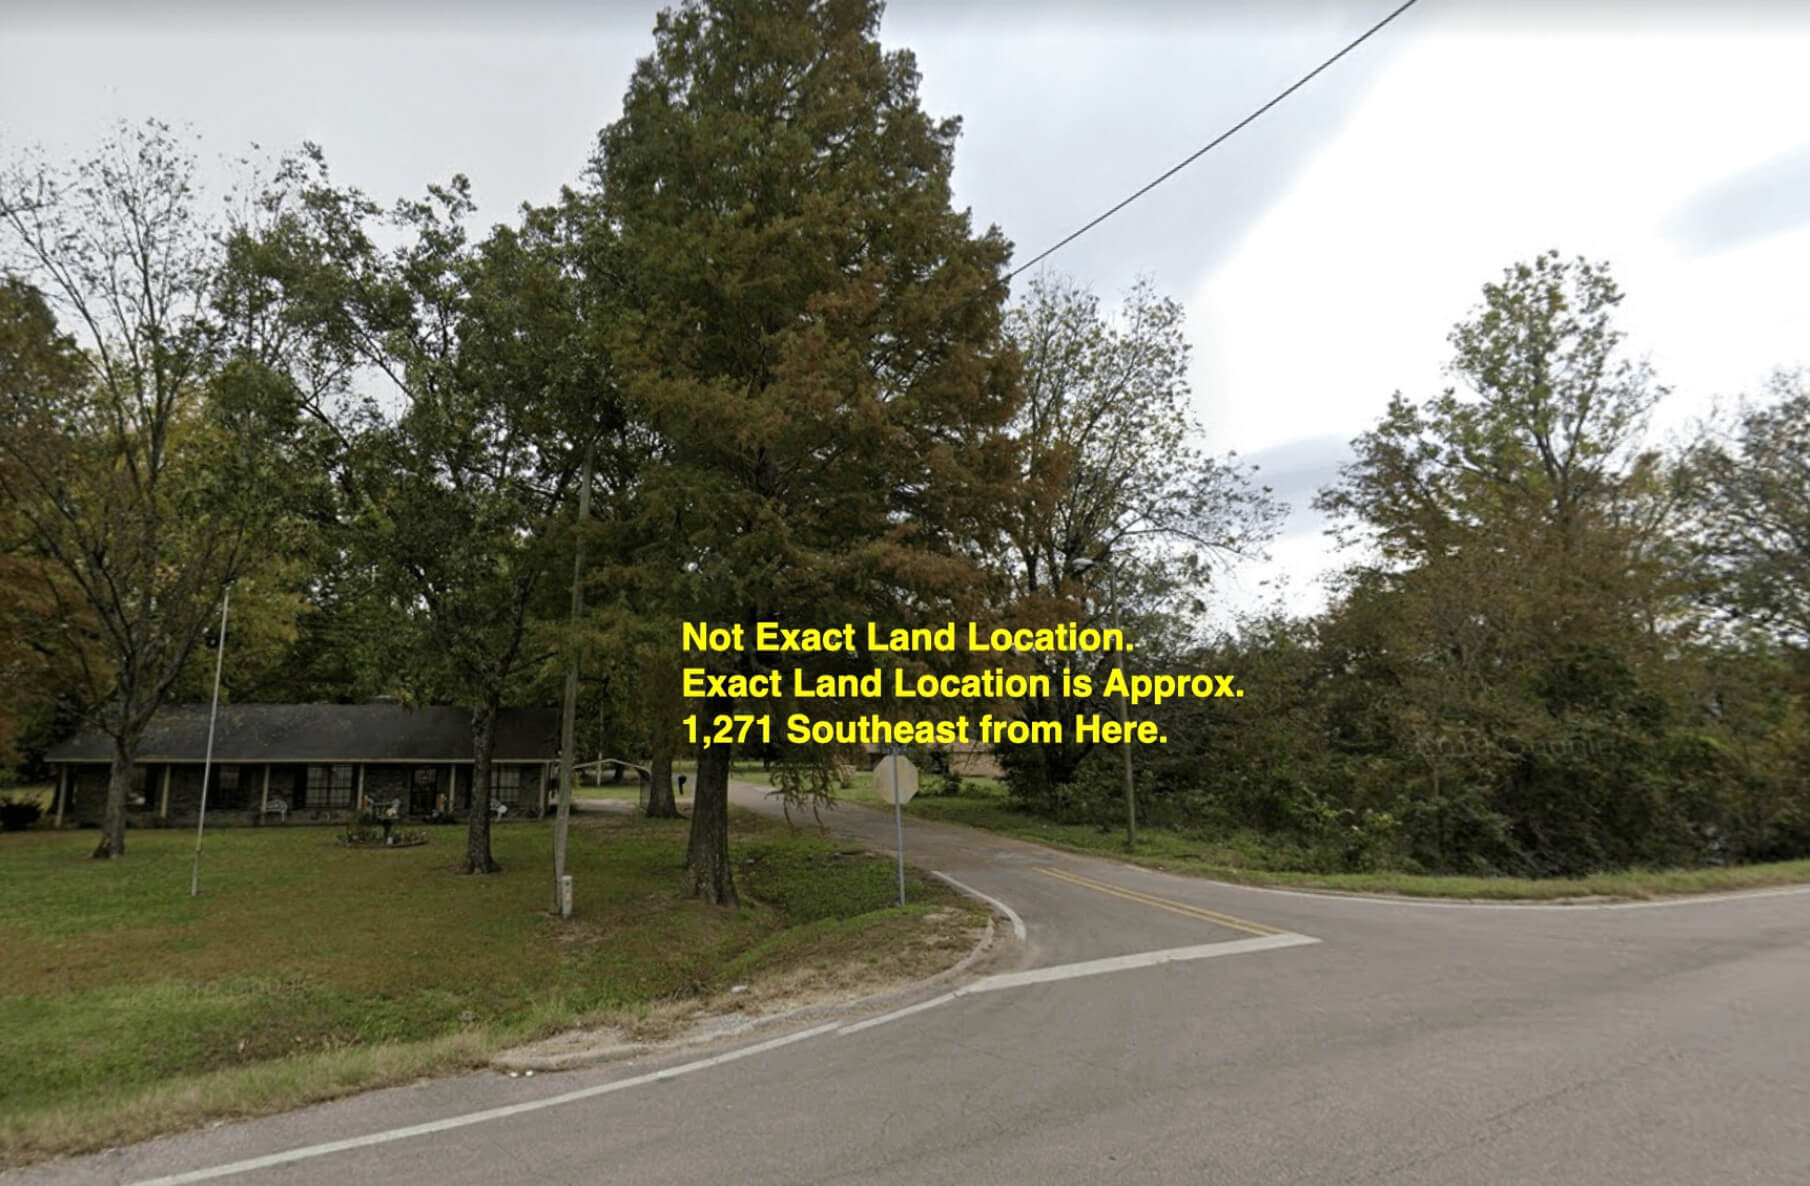 Mississippi Foreclosed Land- Auctions/Bids/Foreclosures- Mississippi Foreclosed Land